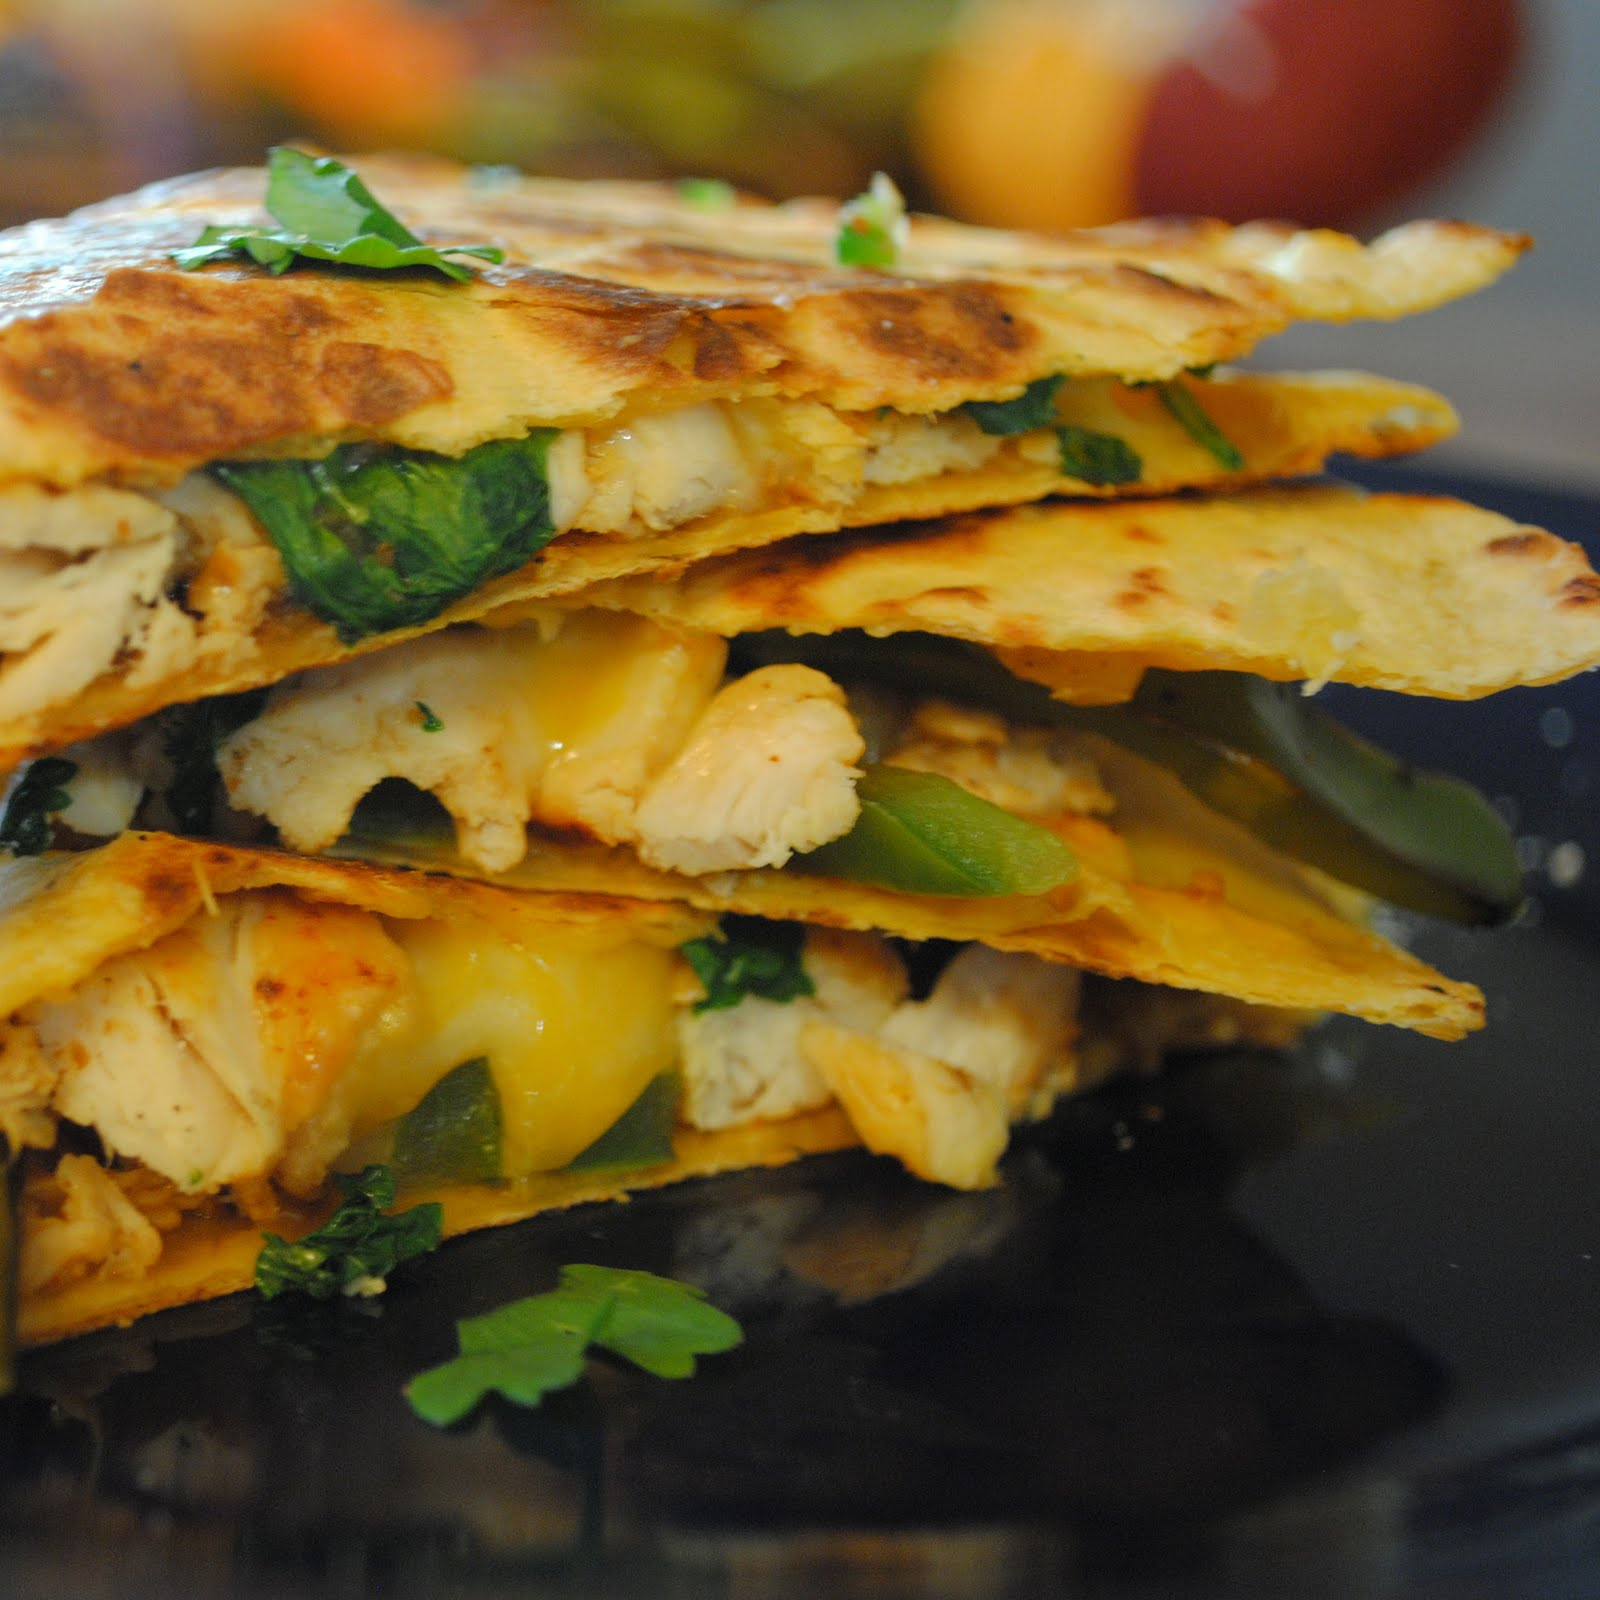 Homemade By Holman: Chicken Fajita Quesadillas